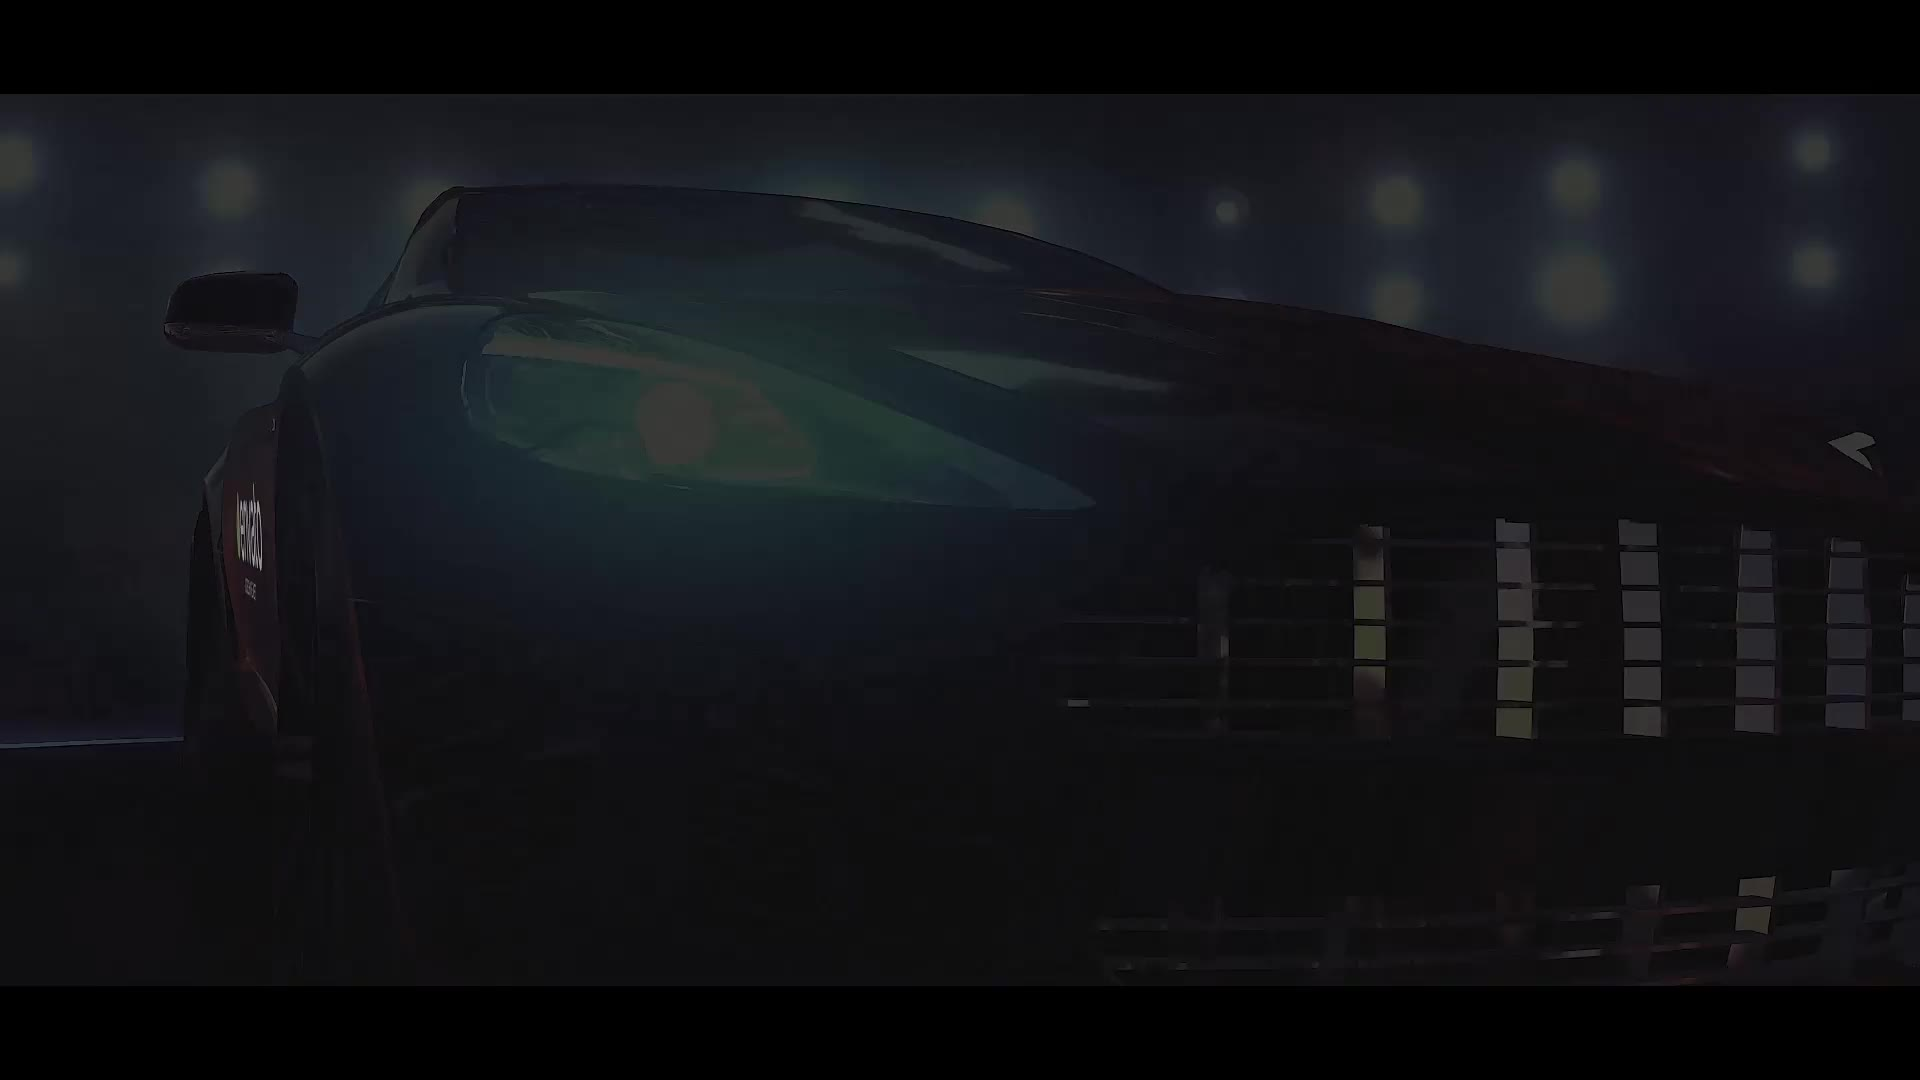 Dynamic Car Intro Videohive 29149720 After Effects Image 6